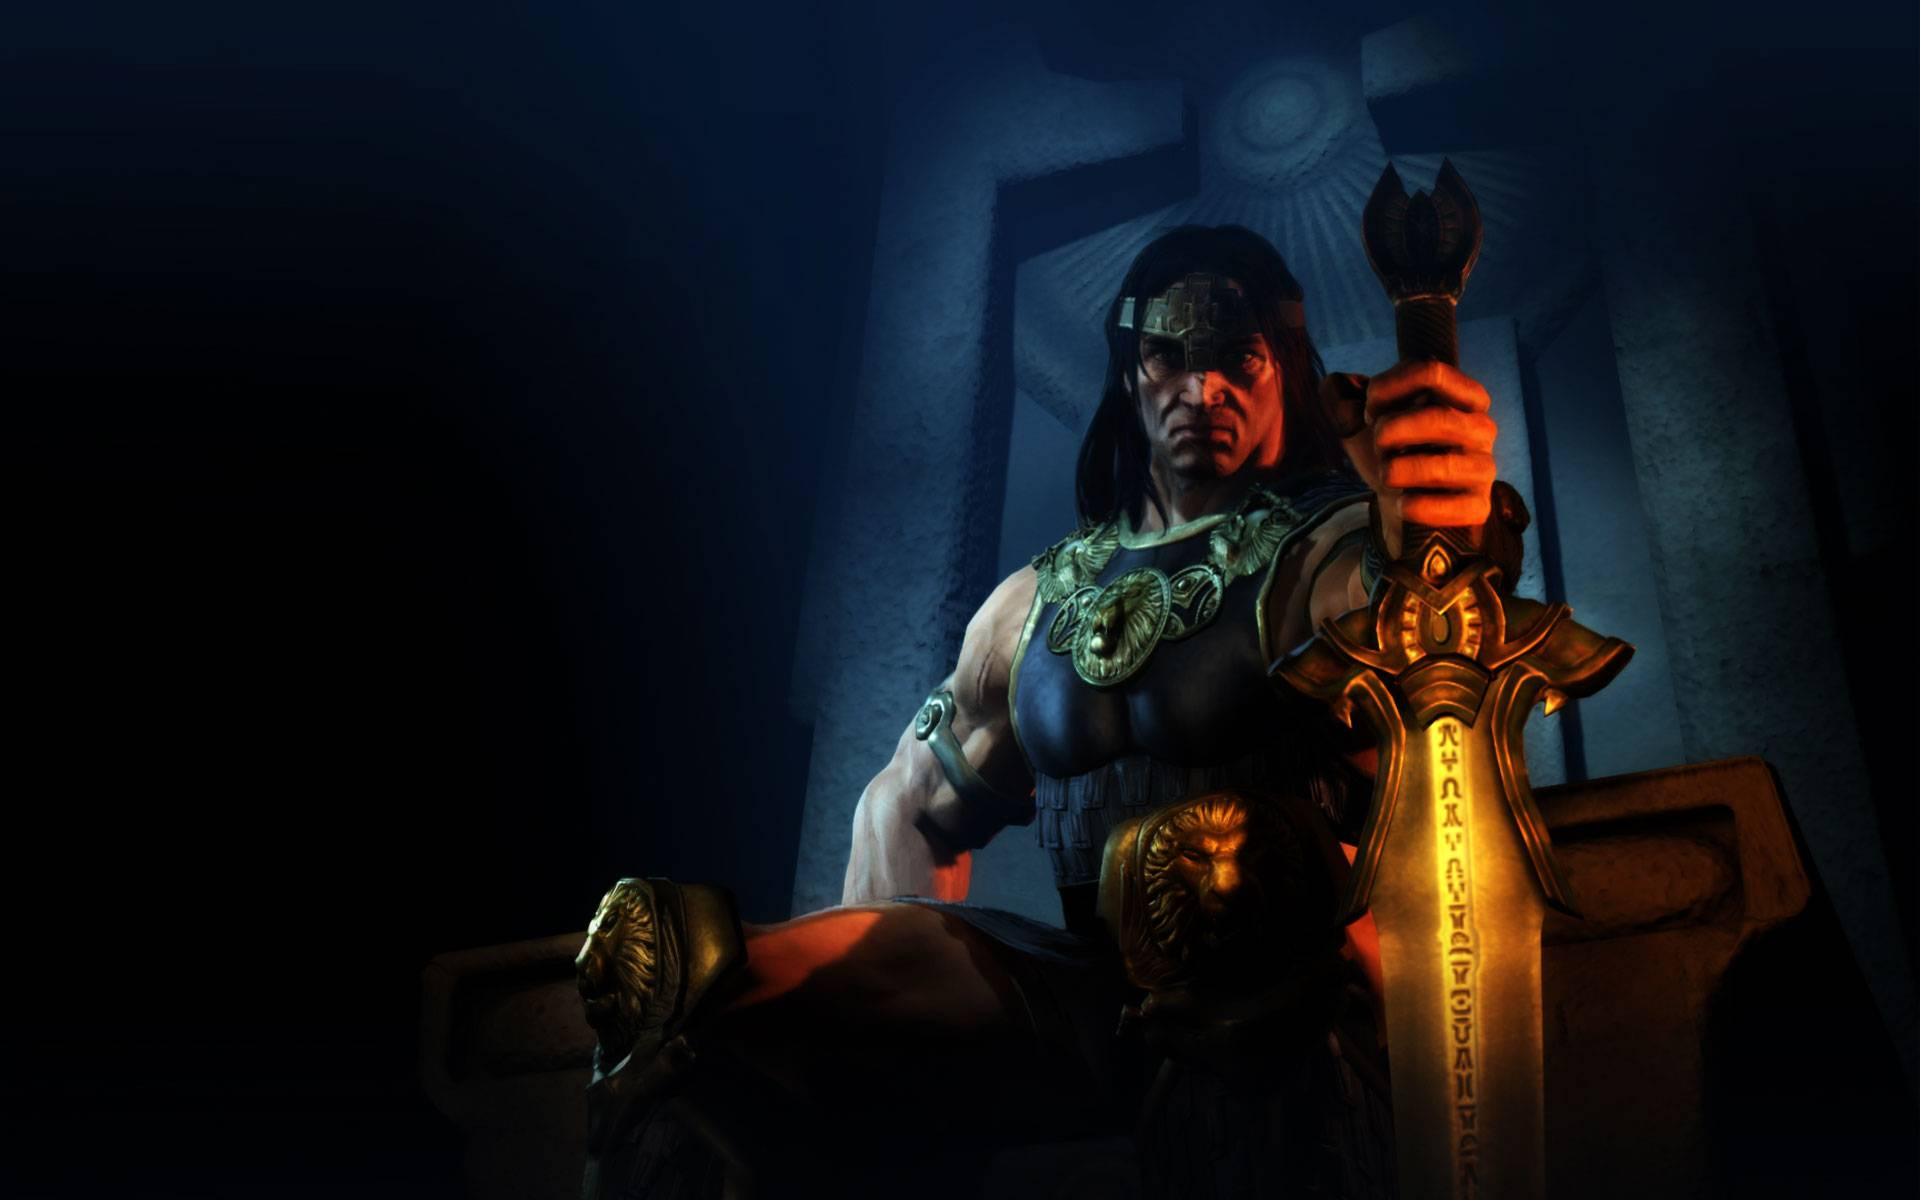 Age of Conan wallpaper 2 1920x1200